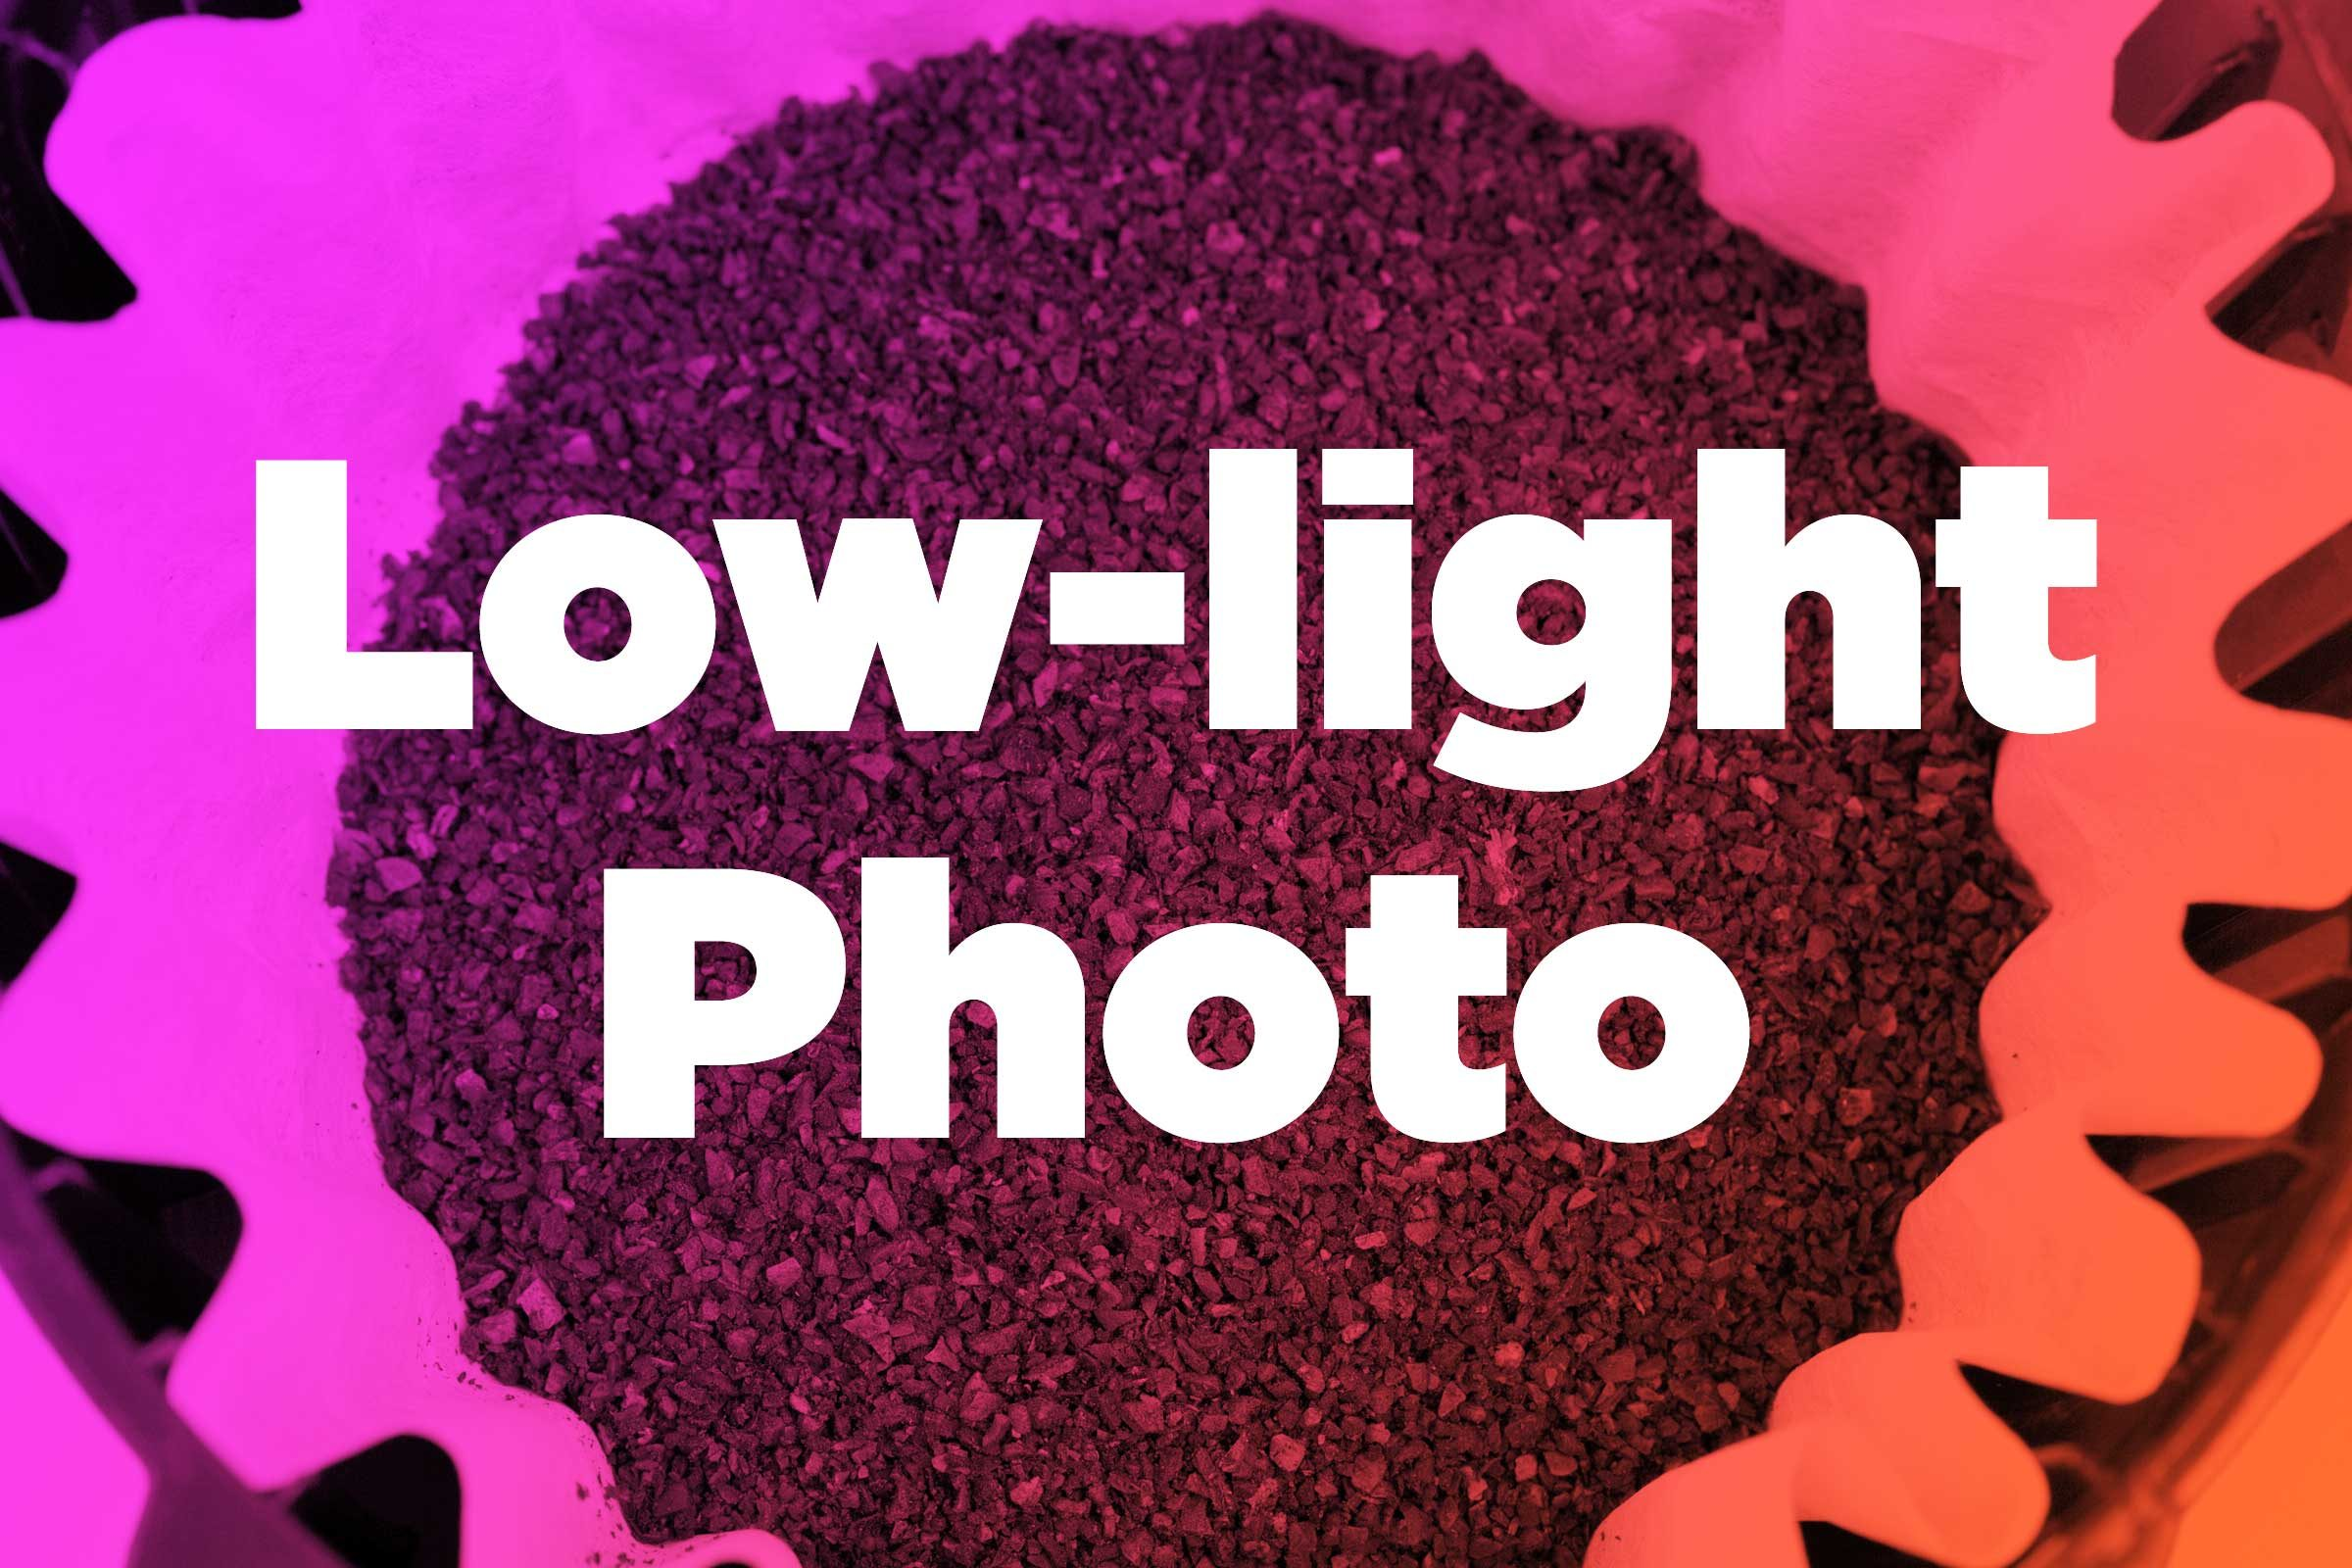 Take the perfect low-light photo